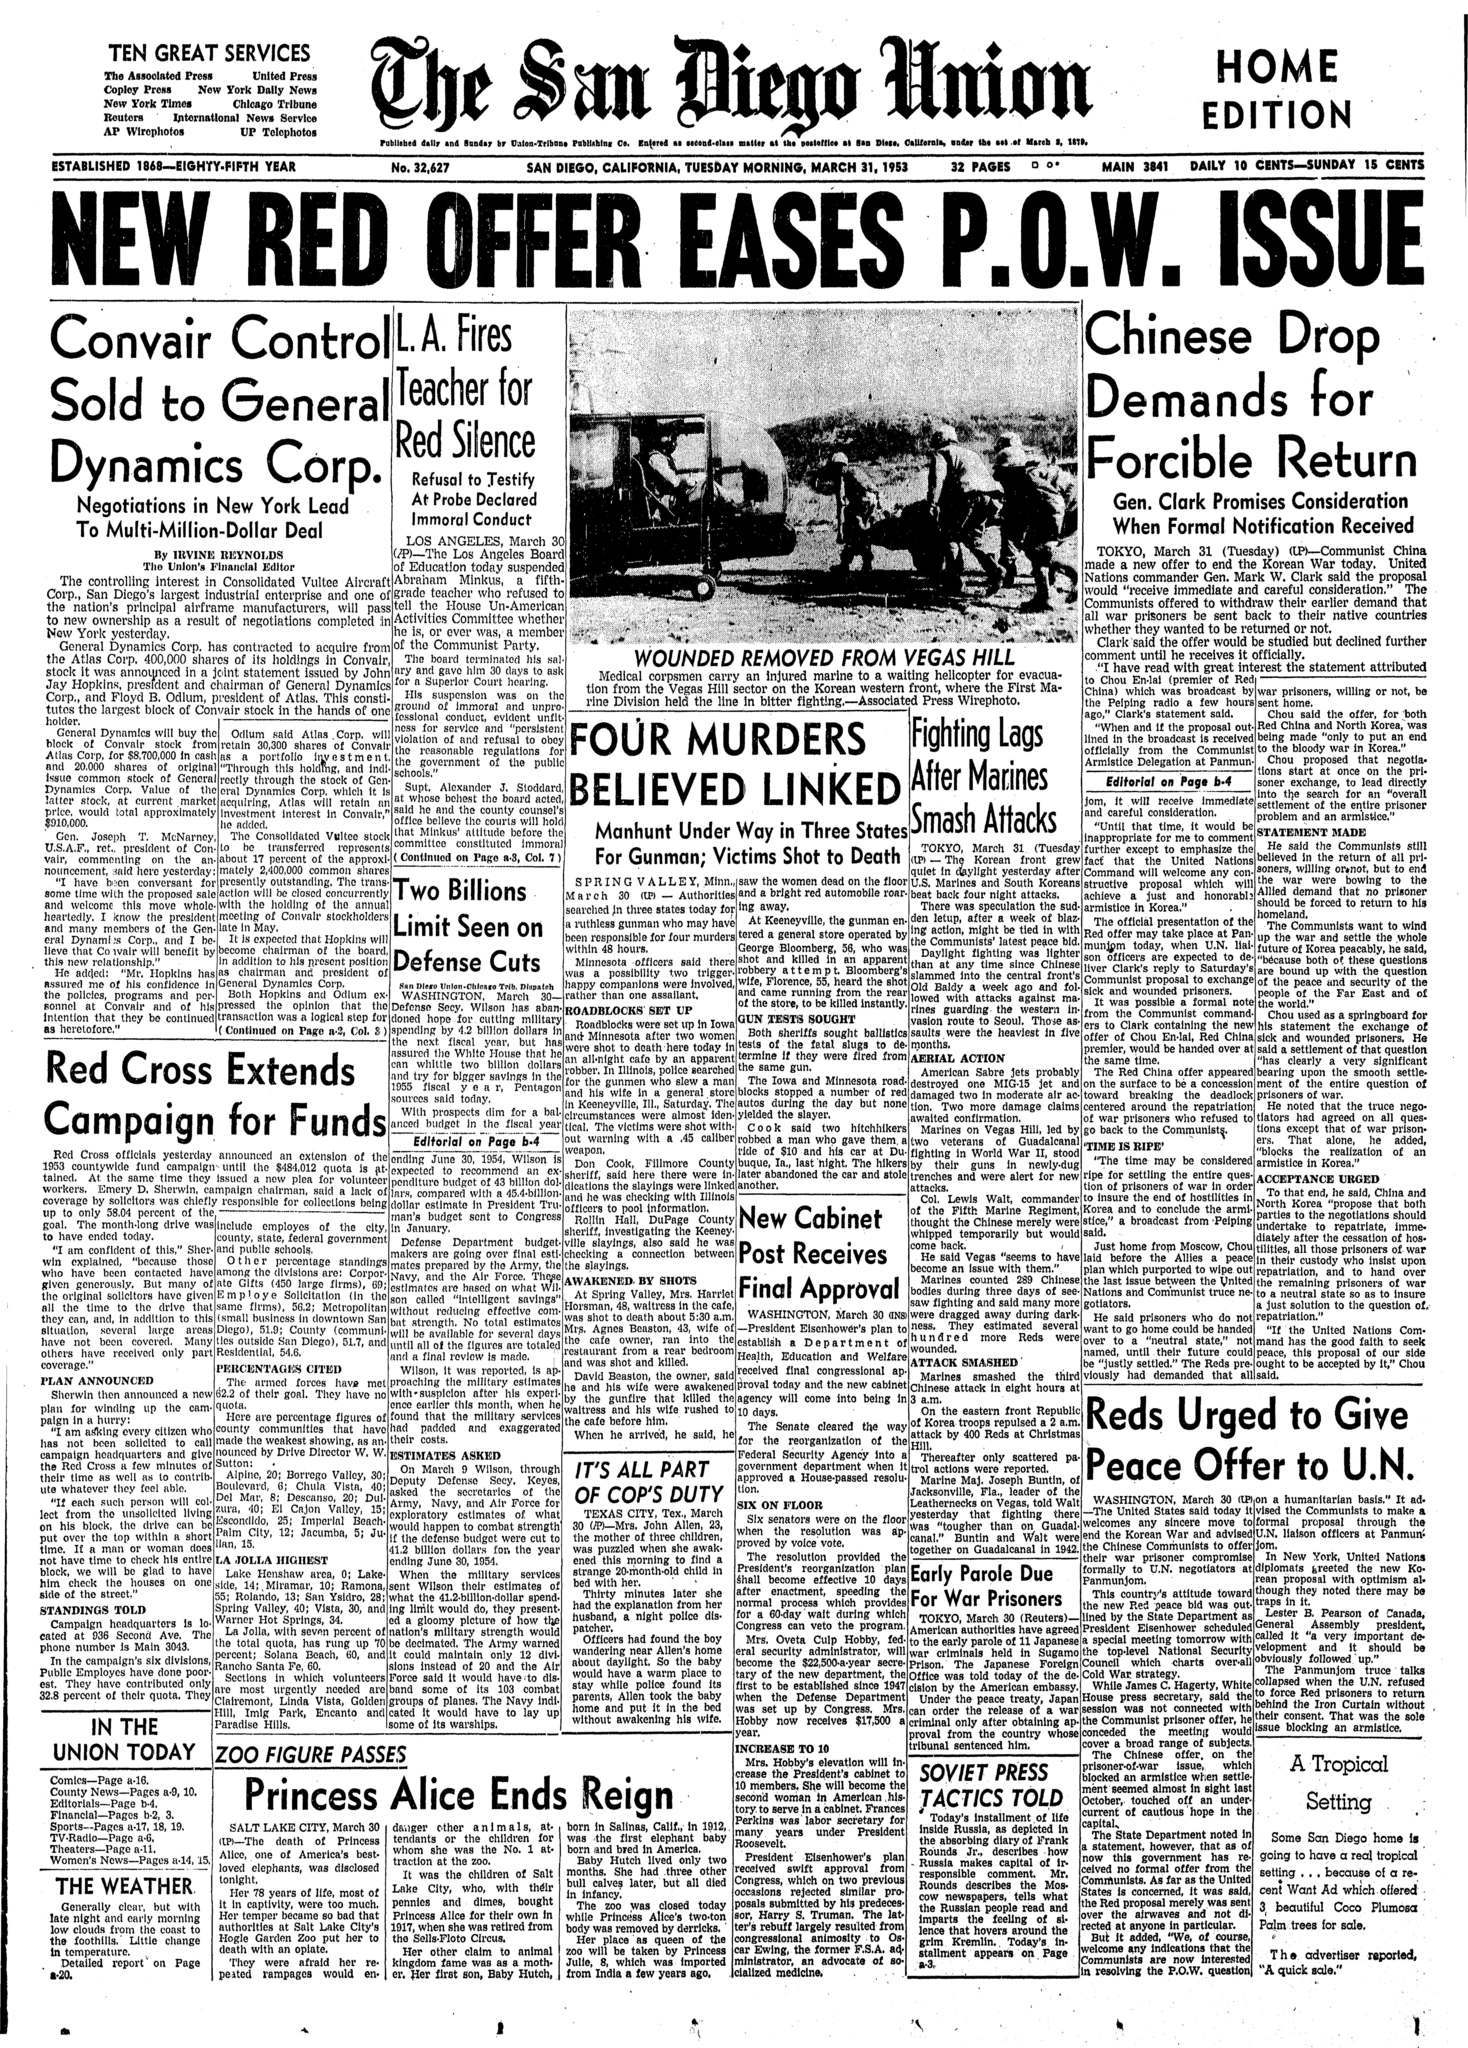 March 31, 1953